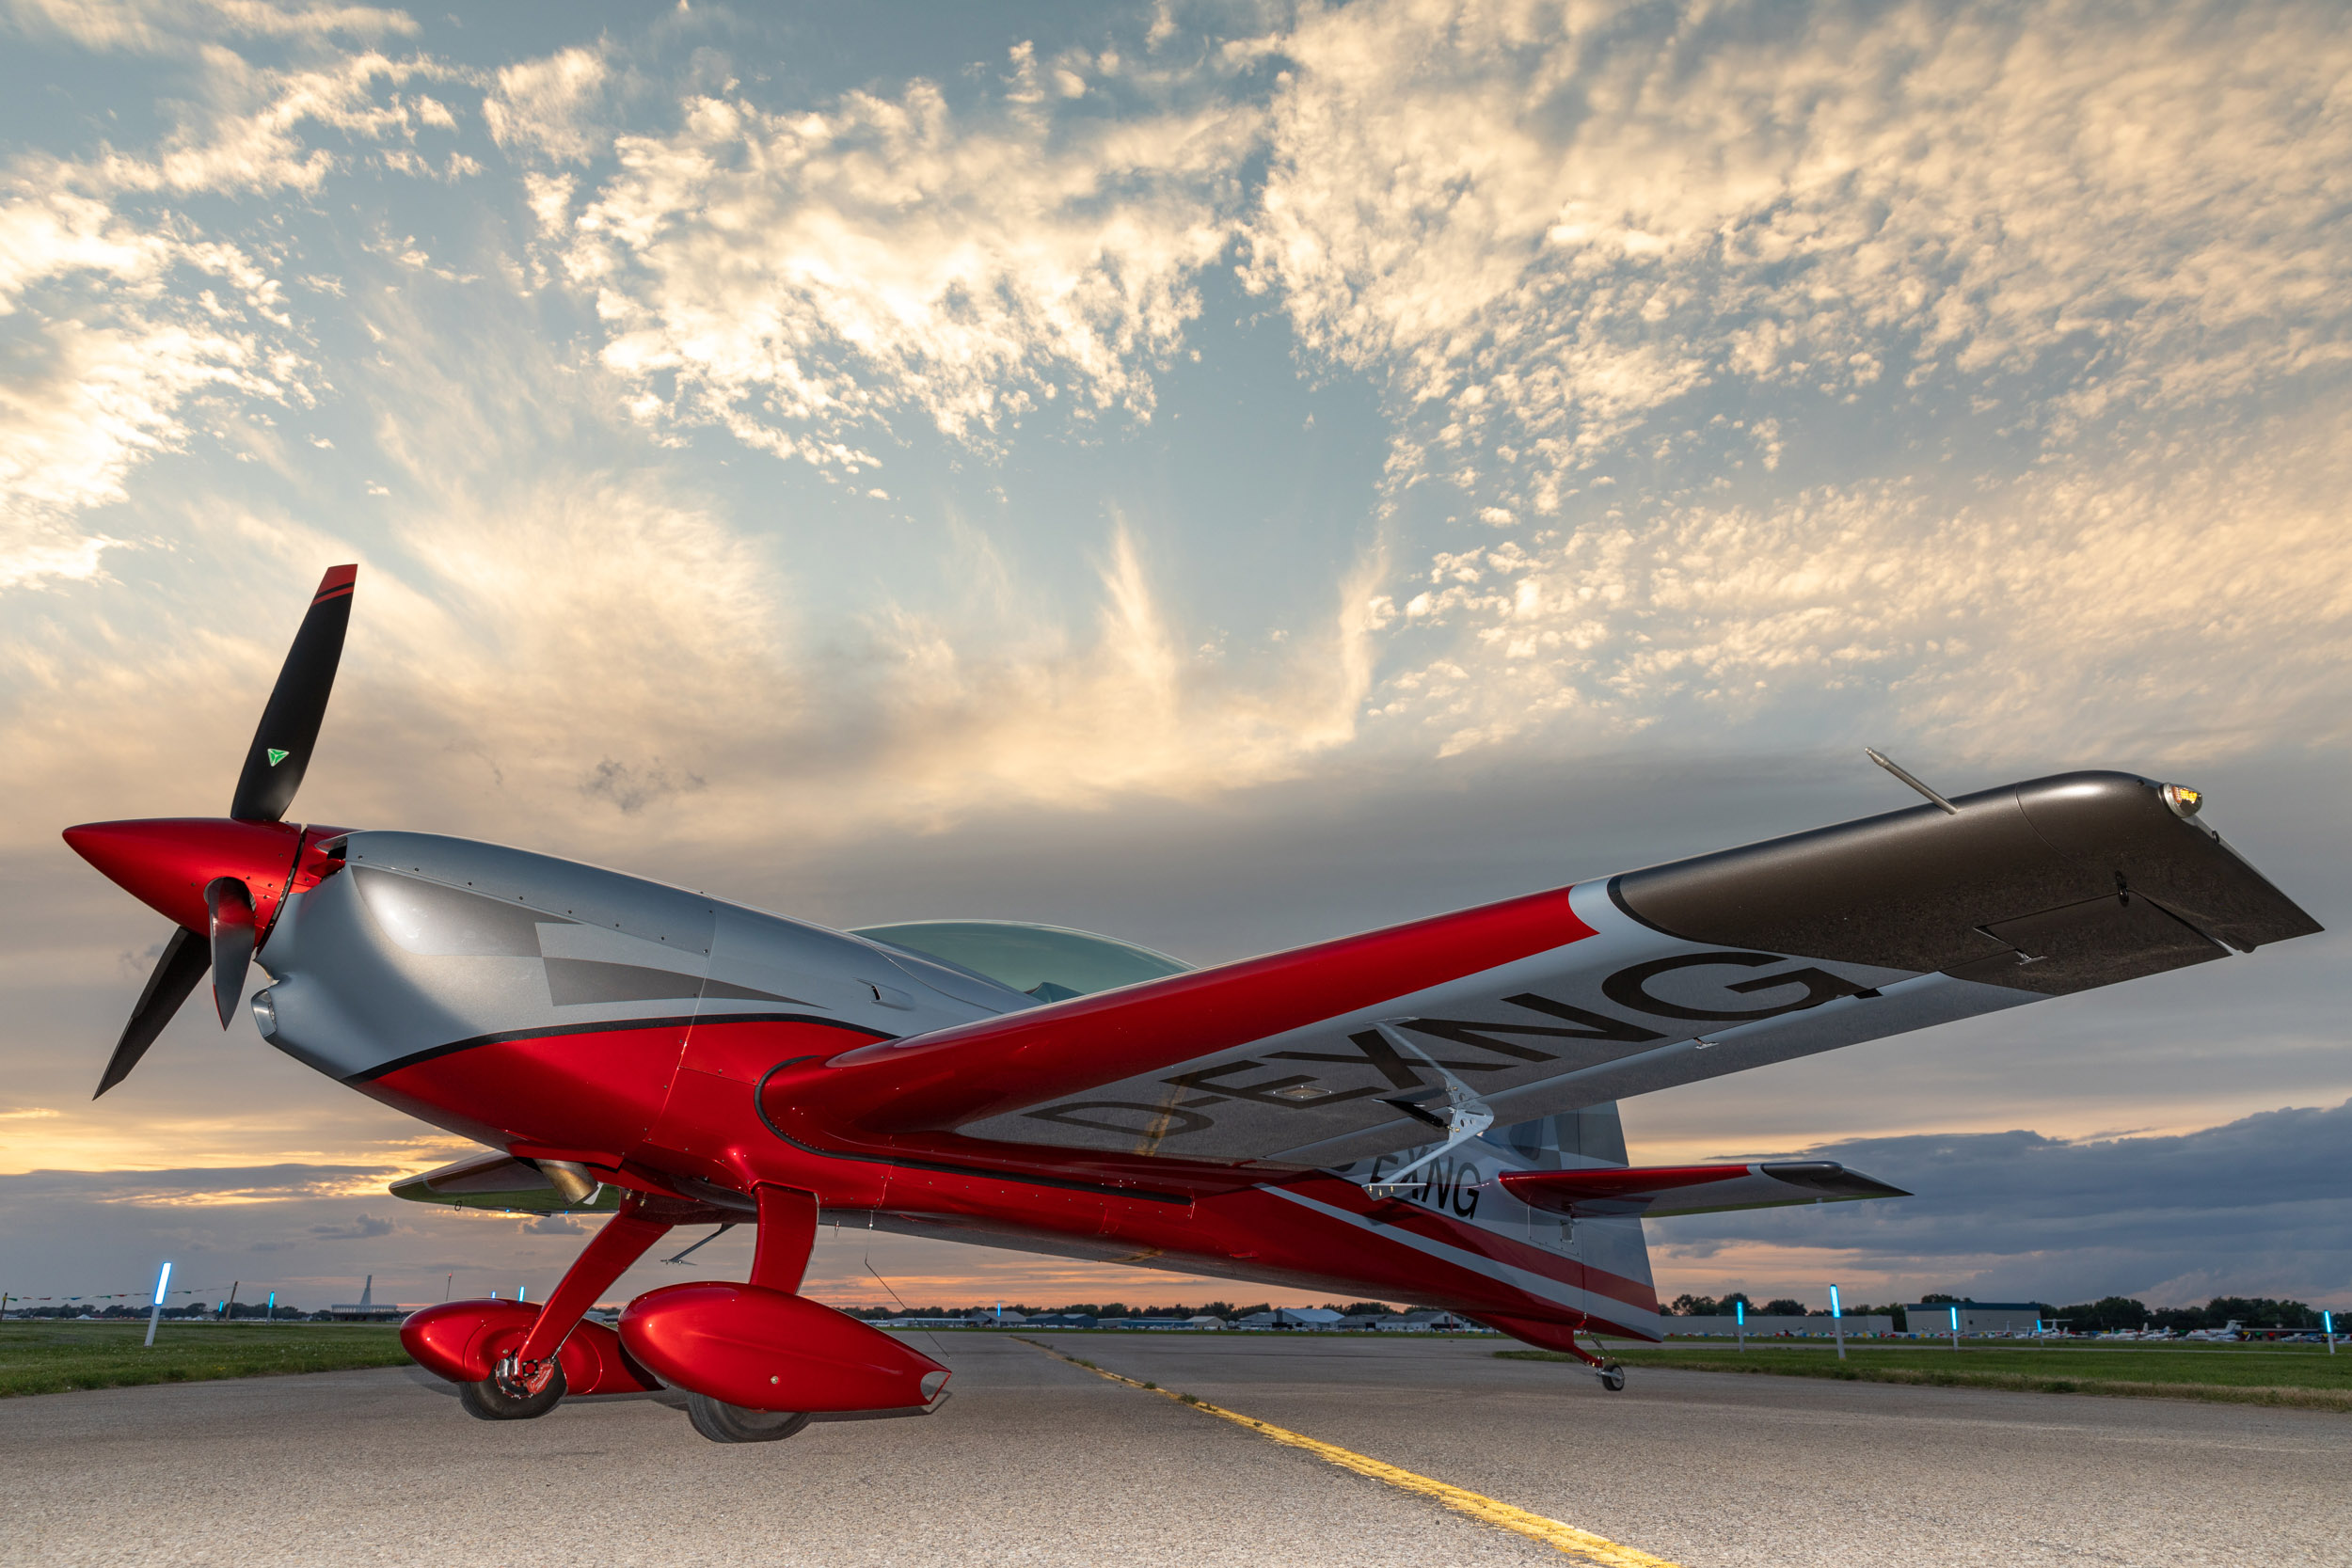 The new all-composite Extra Aircraft NG is unveiled at EAA AirVenture July 22. Photo by Evan Peers, Airspace Media.